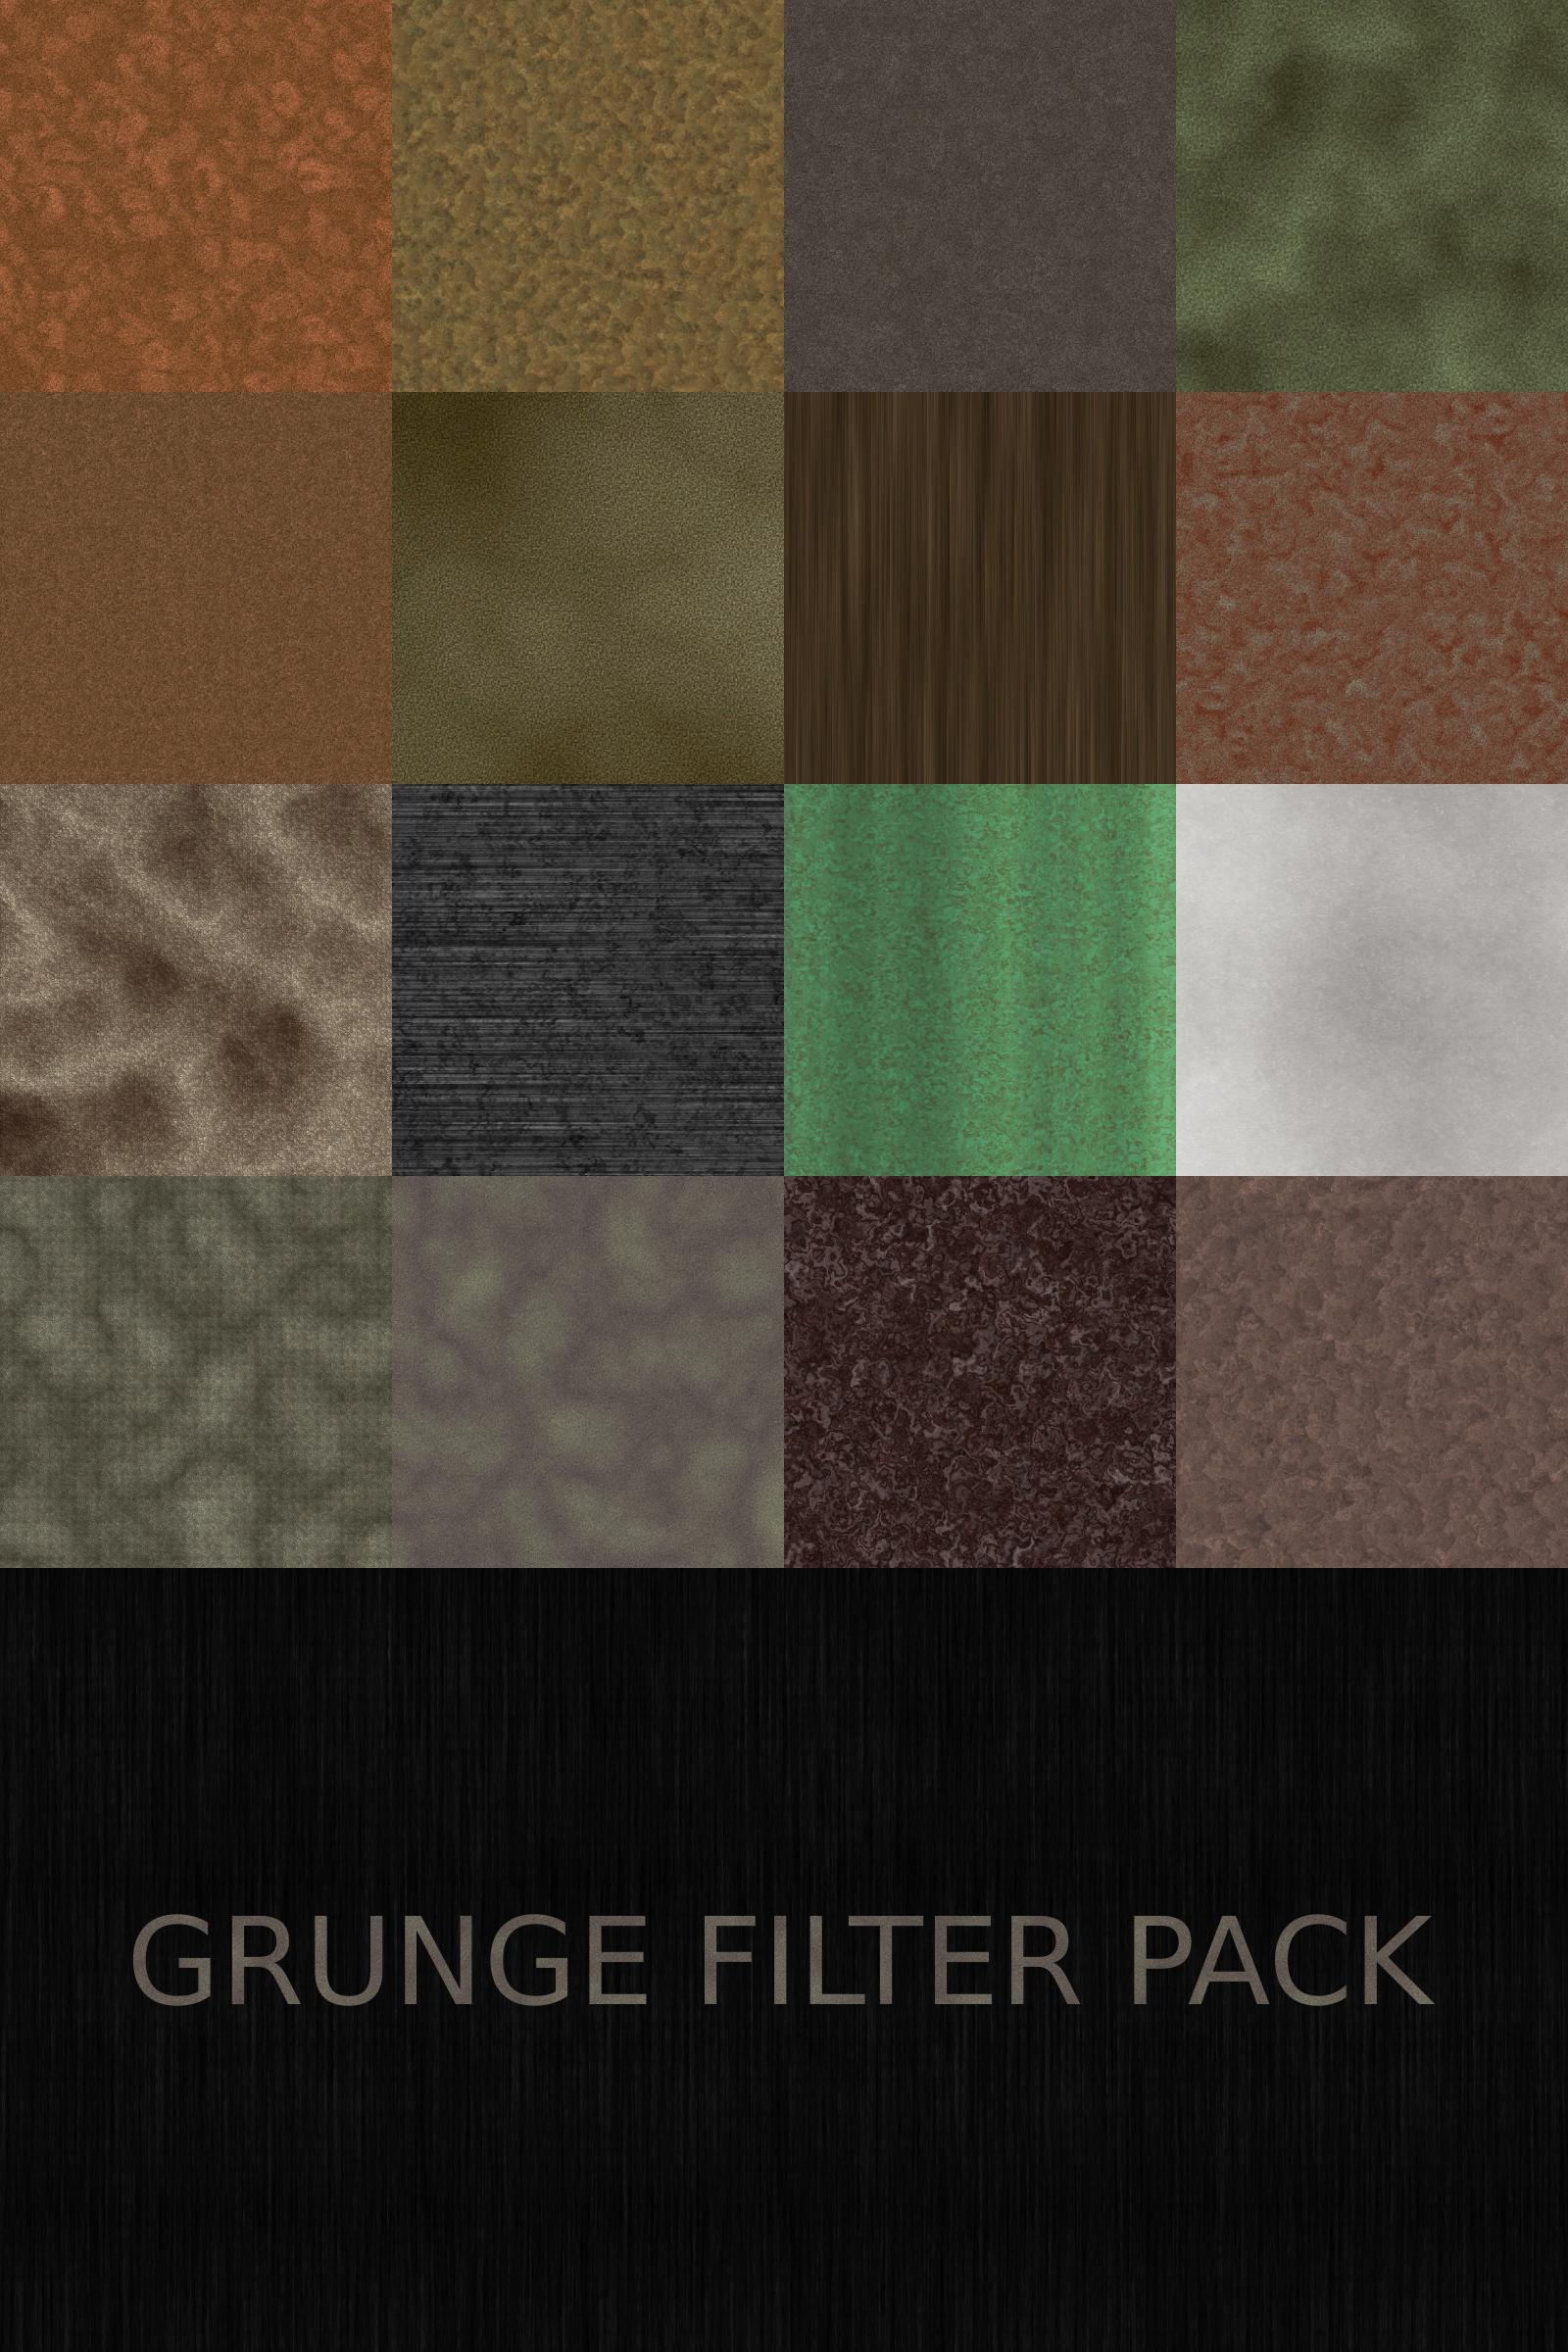 grunge filter pack by Lazur URH